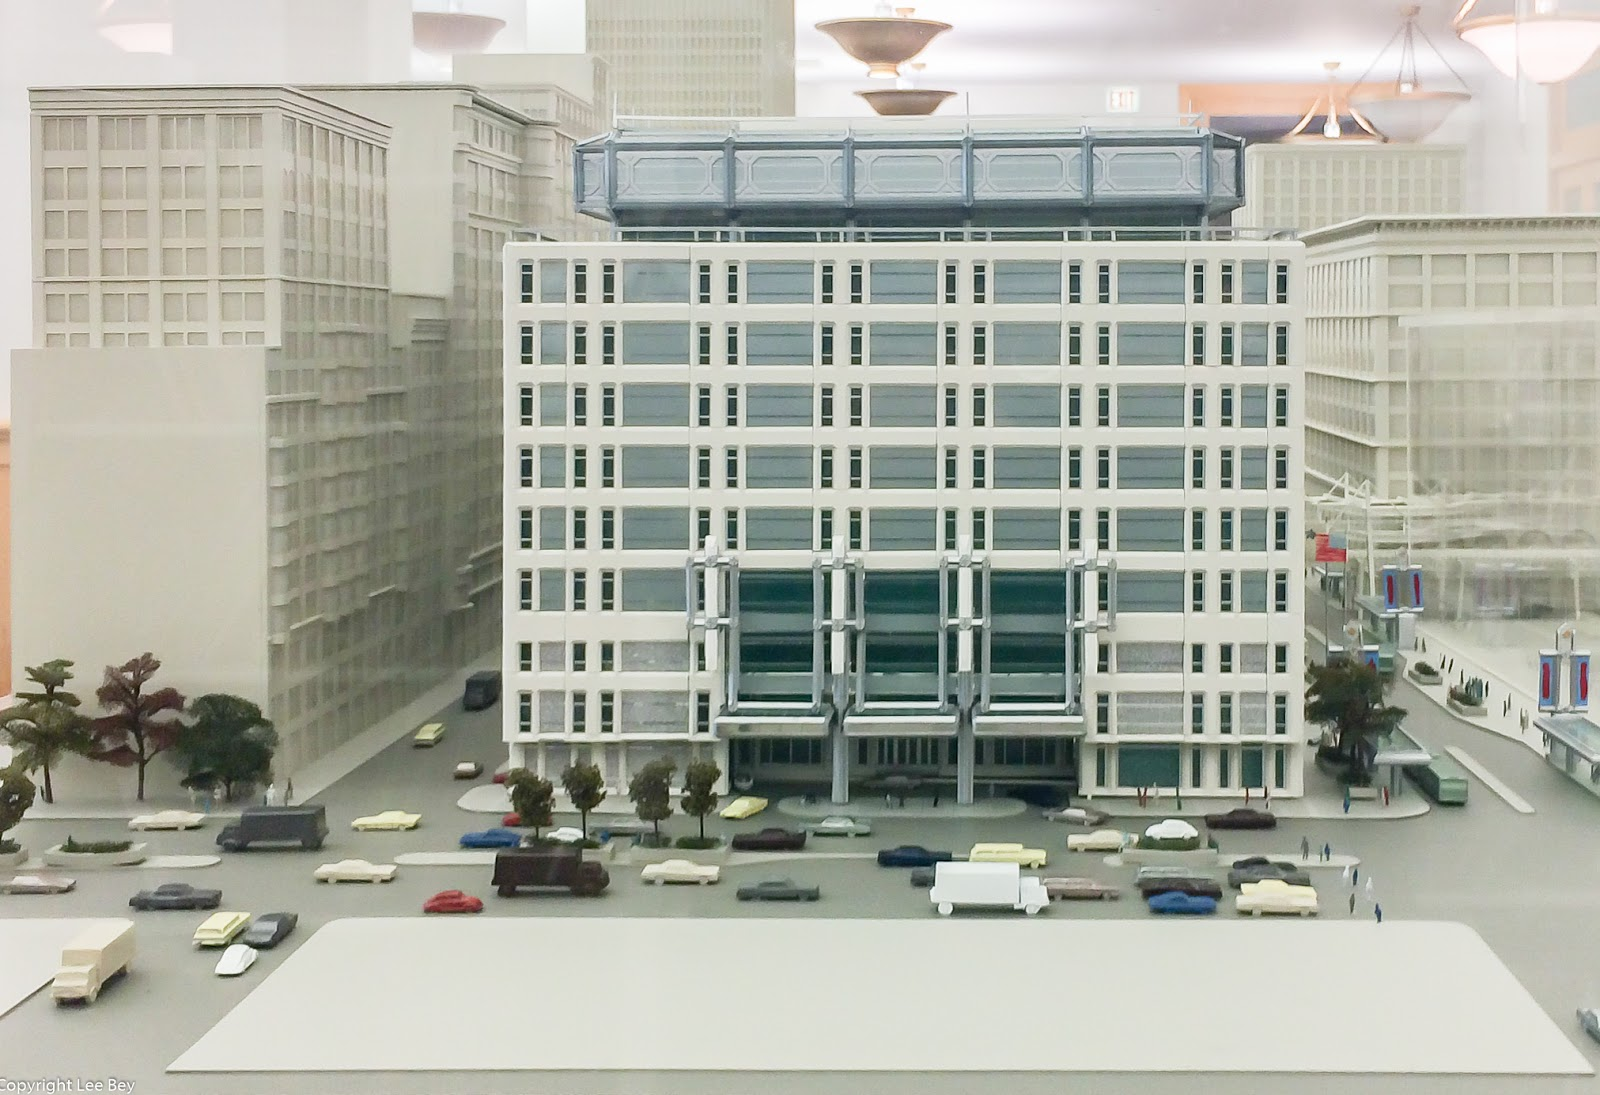 an analysis of the design of the harold washington library by thomas beeby Rem koolhas's proposed library in seattle seems worlds apart from tom beeby's harold t washington library in chicago  yet it is central to the design and.